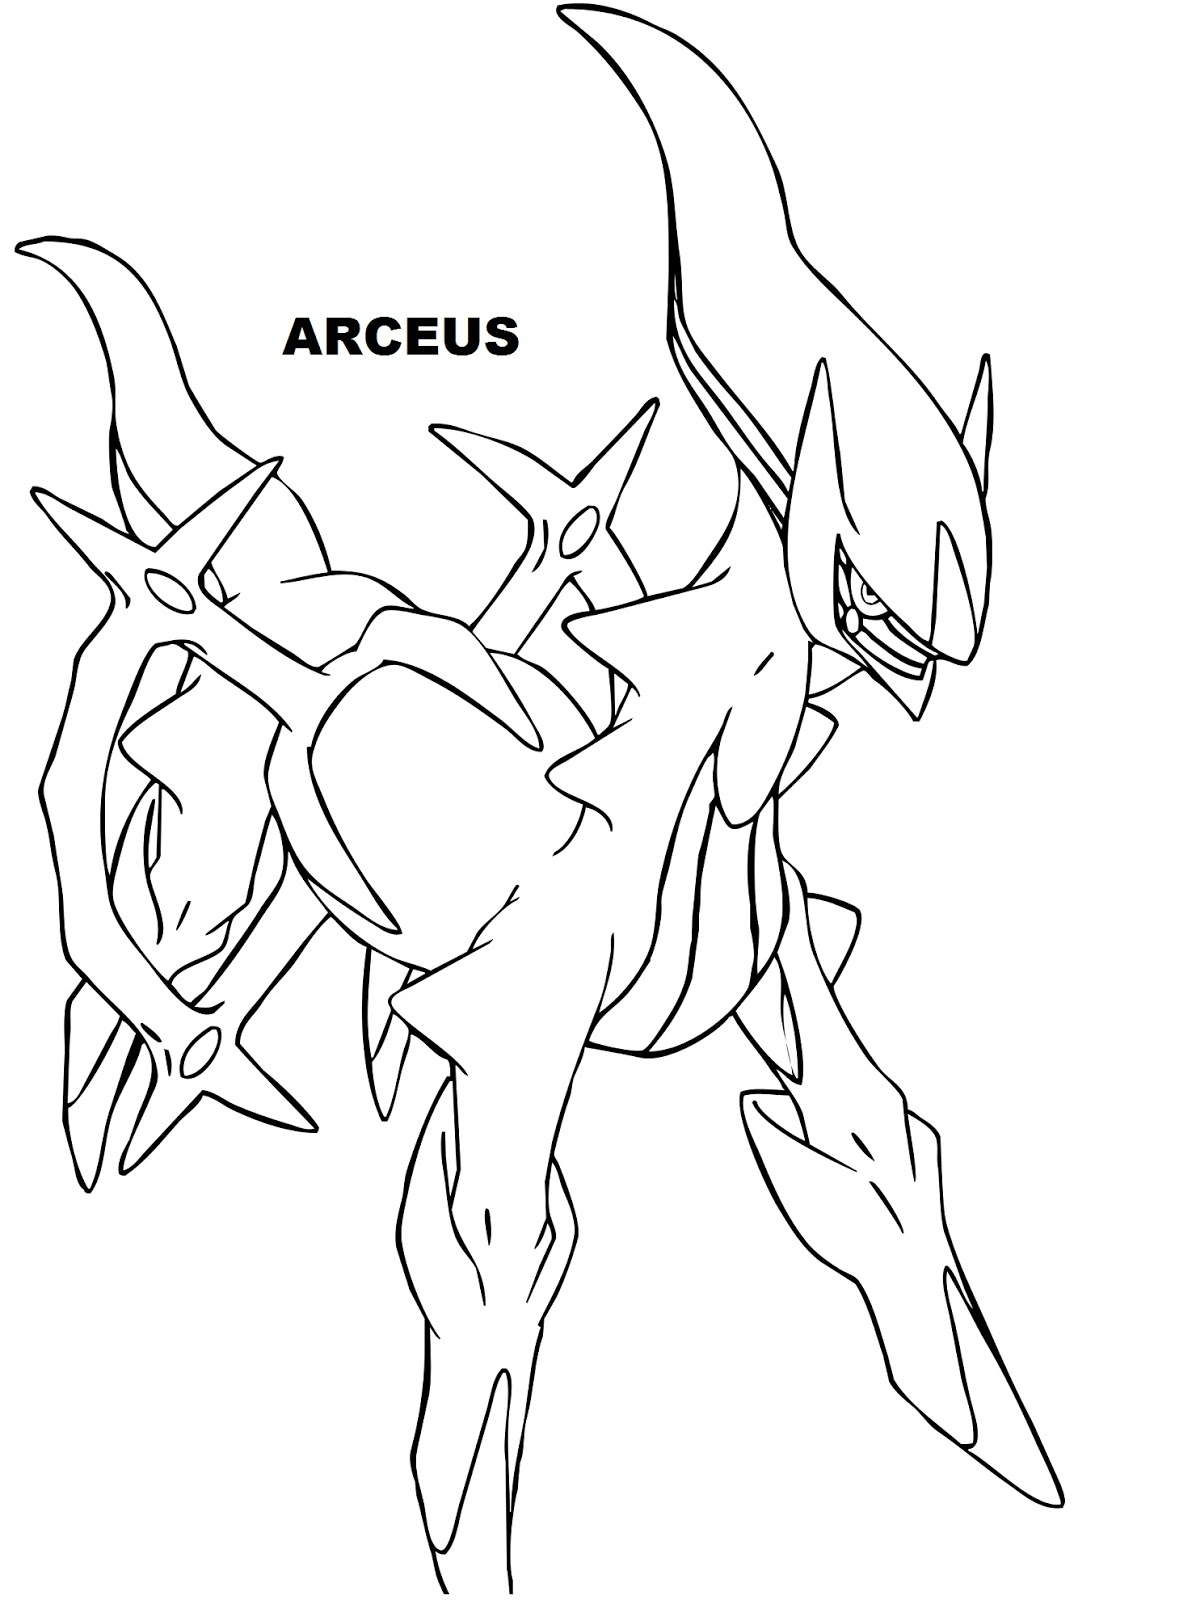 likewise  in addition 487 Pokemon Giratina at coloring pages book for kids boys together with  in addition pokemon xy xerneas at coloring pages for kids boys dot besides 502 pokemon Futachimaru at coloring pages book for kids boys additionally  likewise Giratina legendary pokemon coloring pages further  also  moreover 493 Pokemon Arceus at coloring pages book for kids boys. on legendary pokemon coloring pages for boys